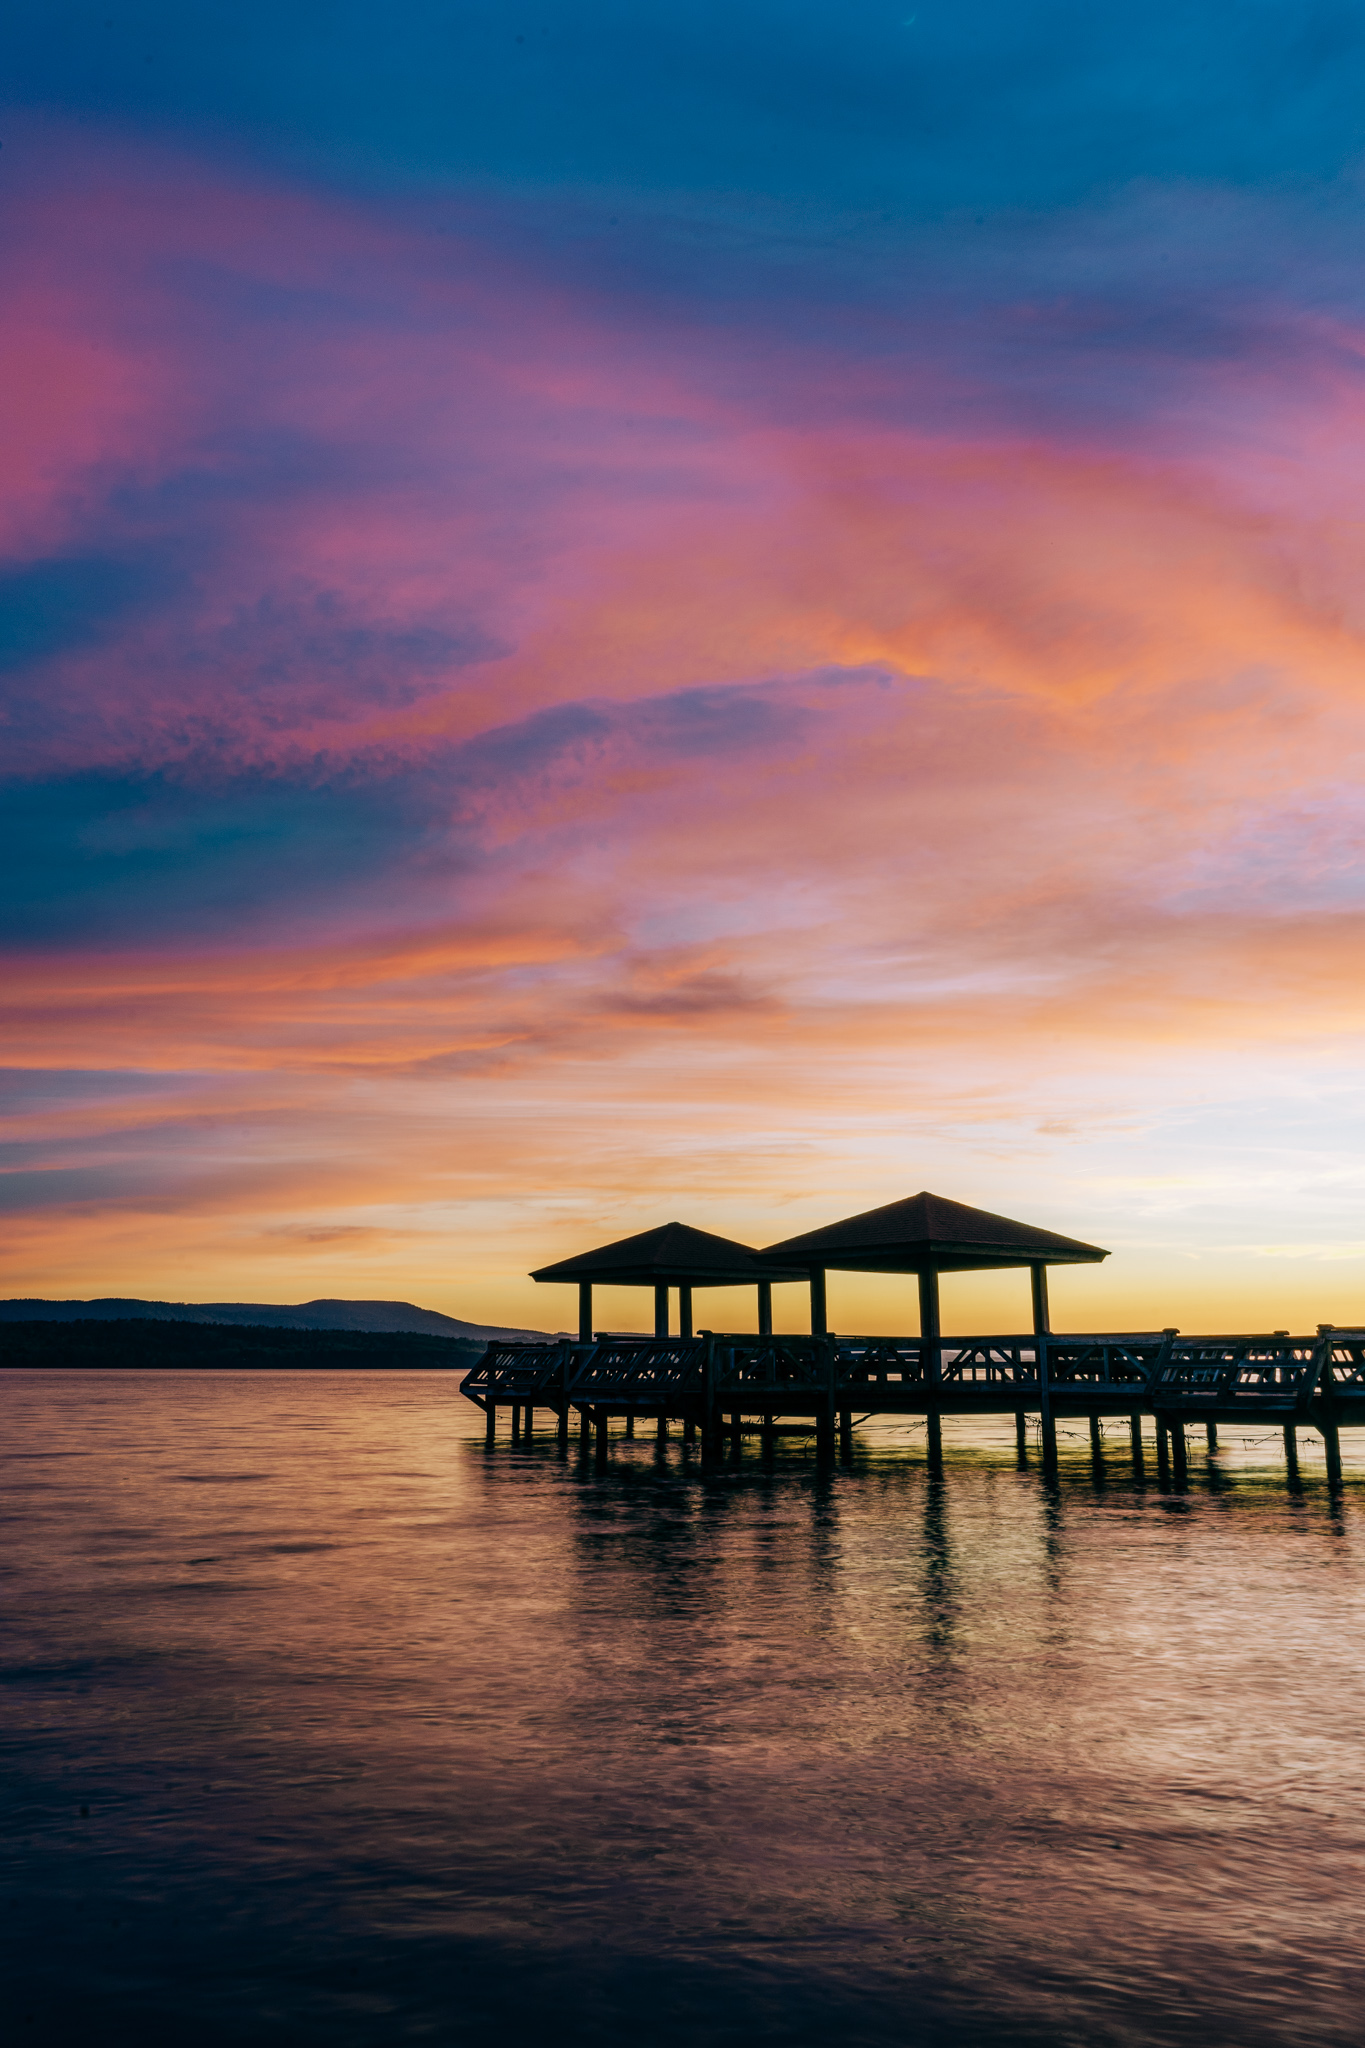 Sunset over a pier on Lake Dardanelle